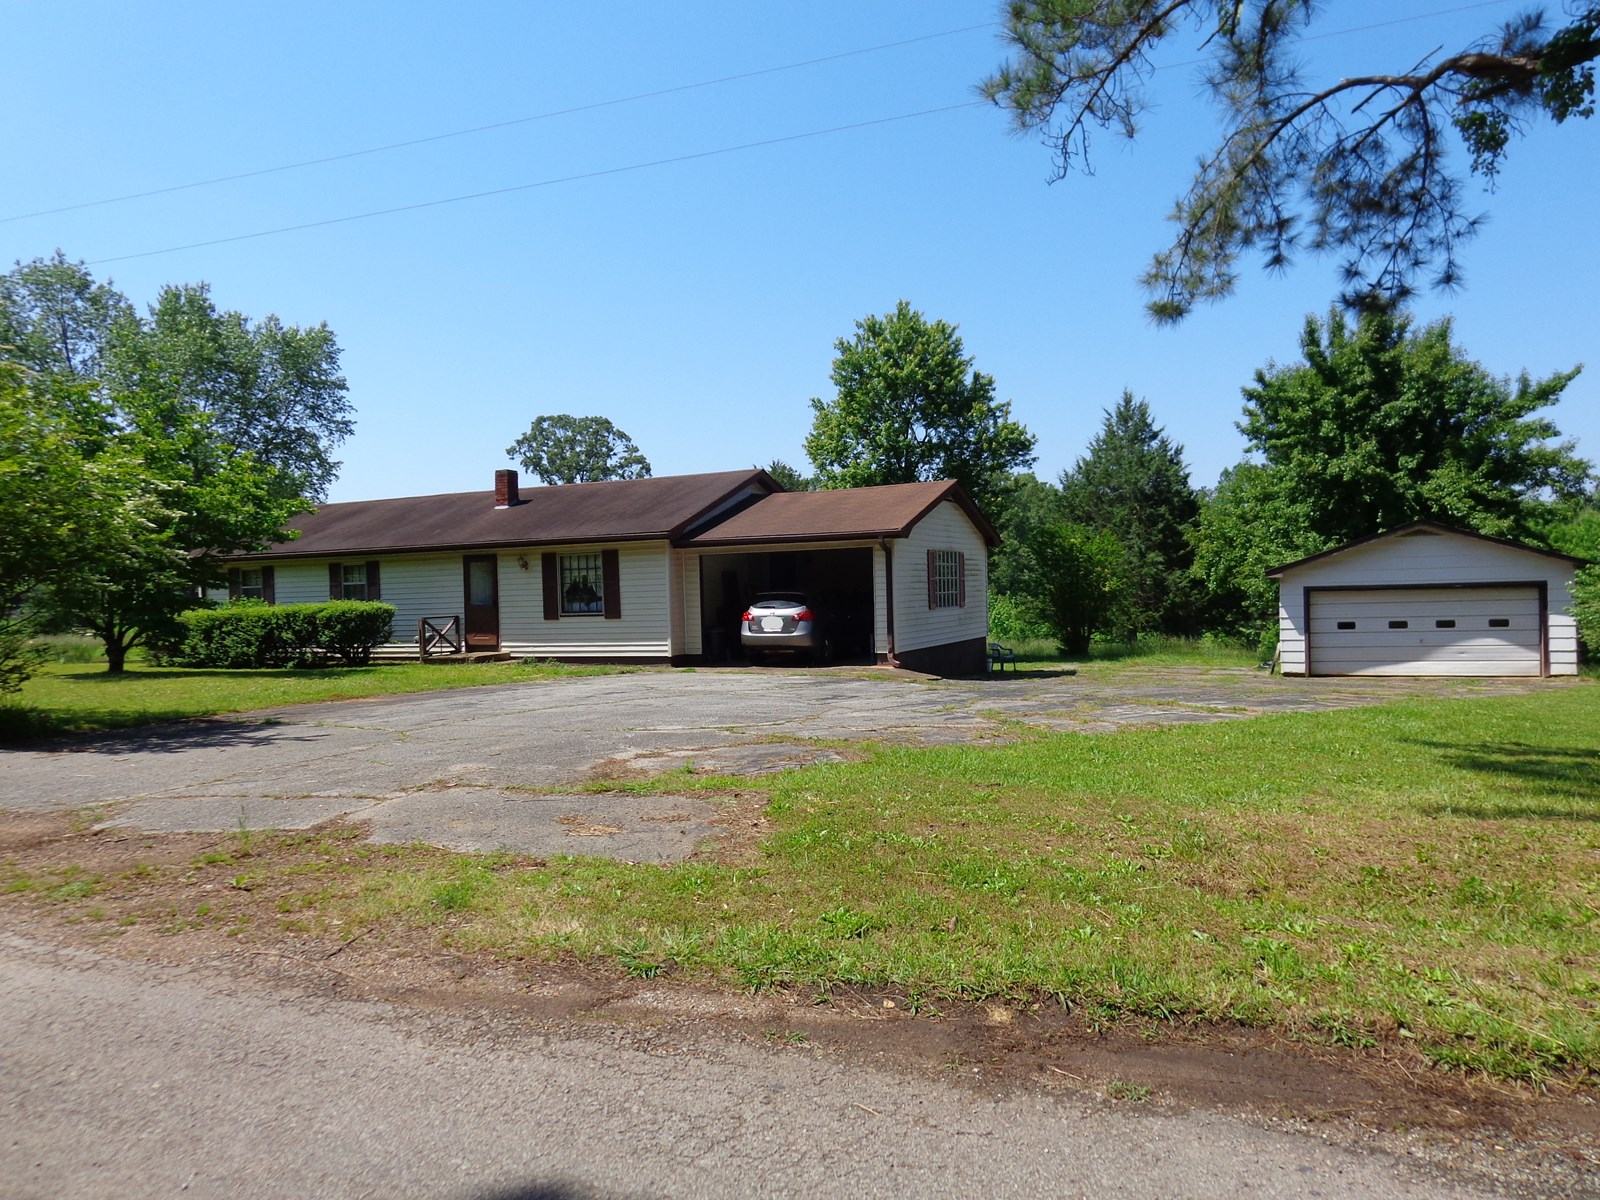 3 BEDROOM HOME FOR SALE IN TN WITH ACREAGE & SHOP